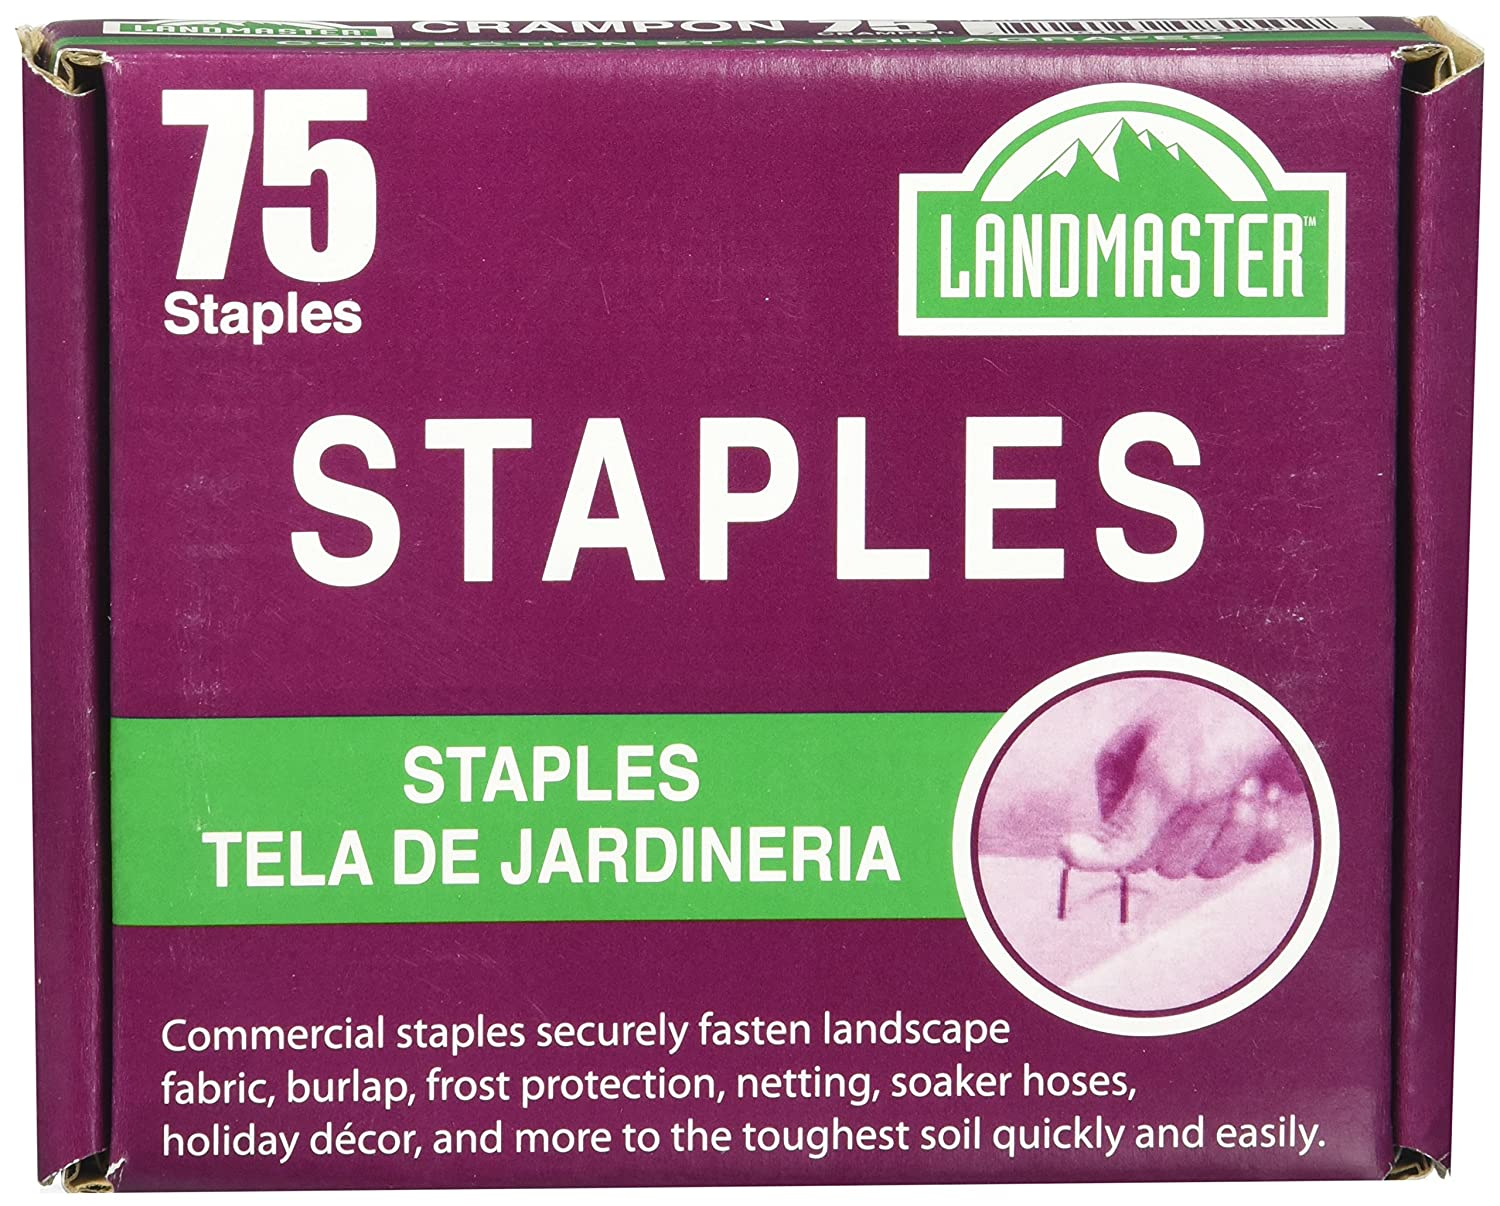 Easy Gardener 815 038398008155 Fabric & Garden Staples Attaches Landscape Fabric and Turf to Soil (4, 75, Silver